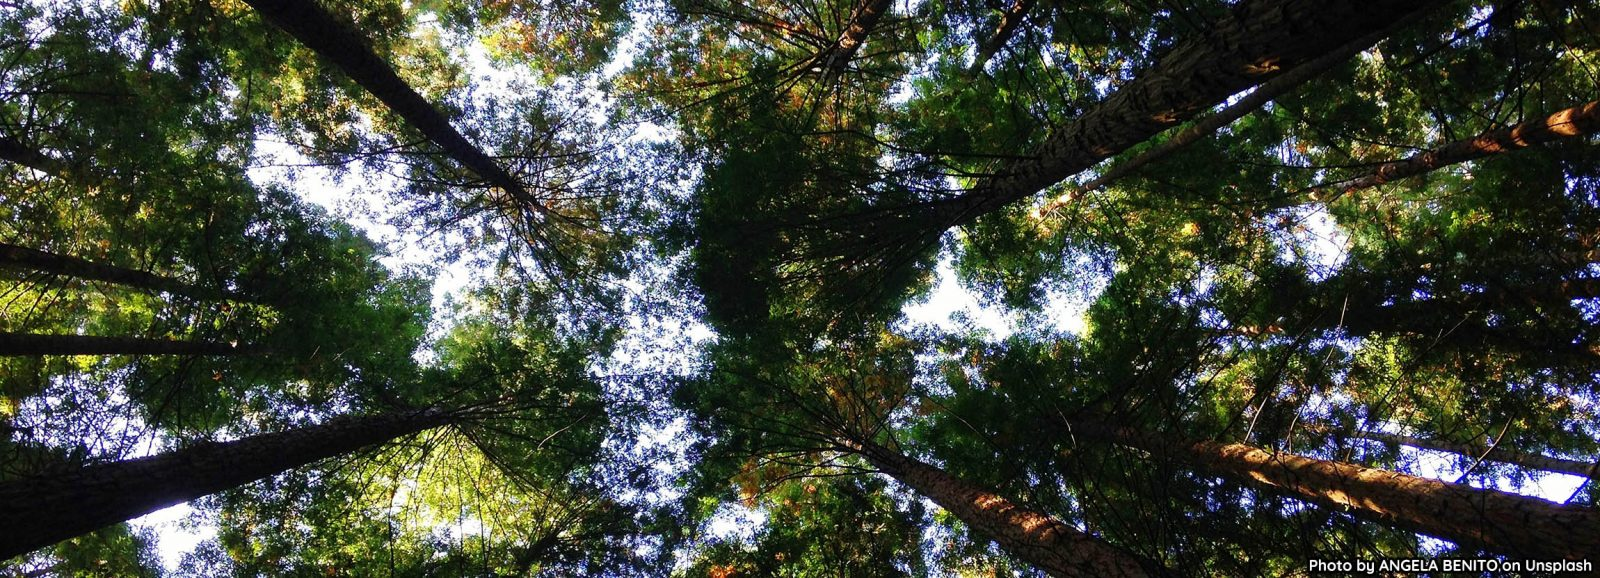 Photo of trees from the ground up